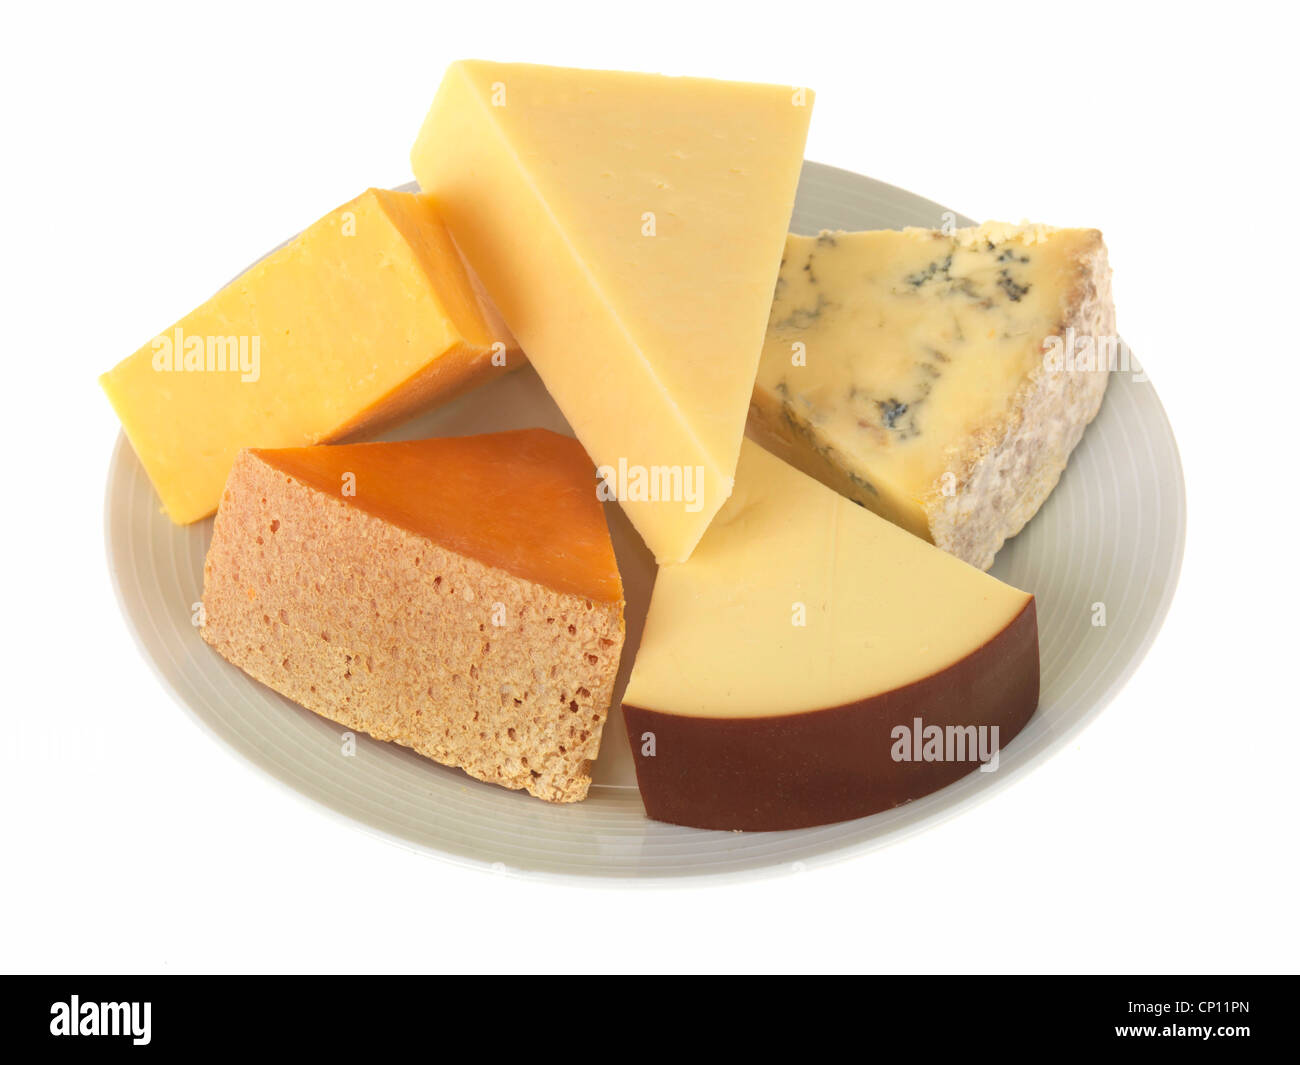 Plate of Mixed Cheeses - Stock Image